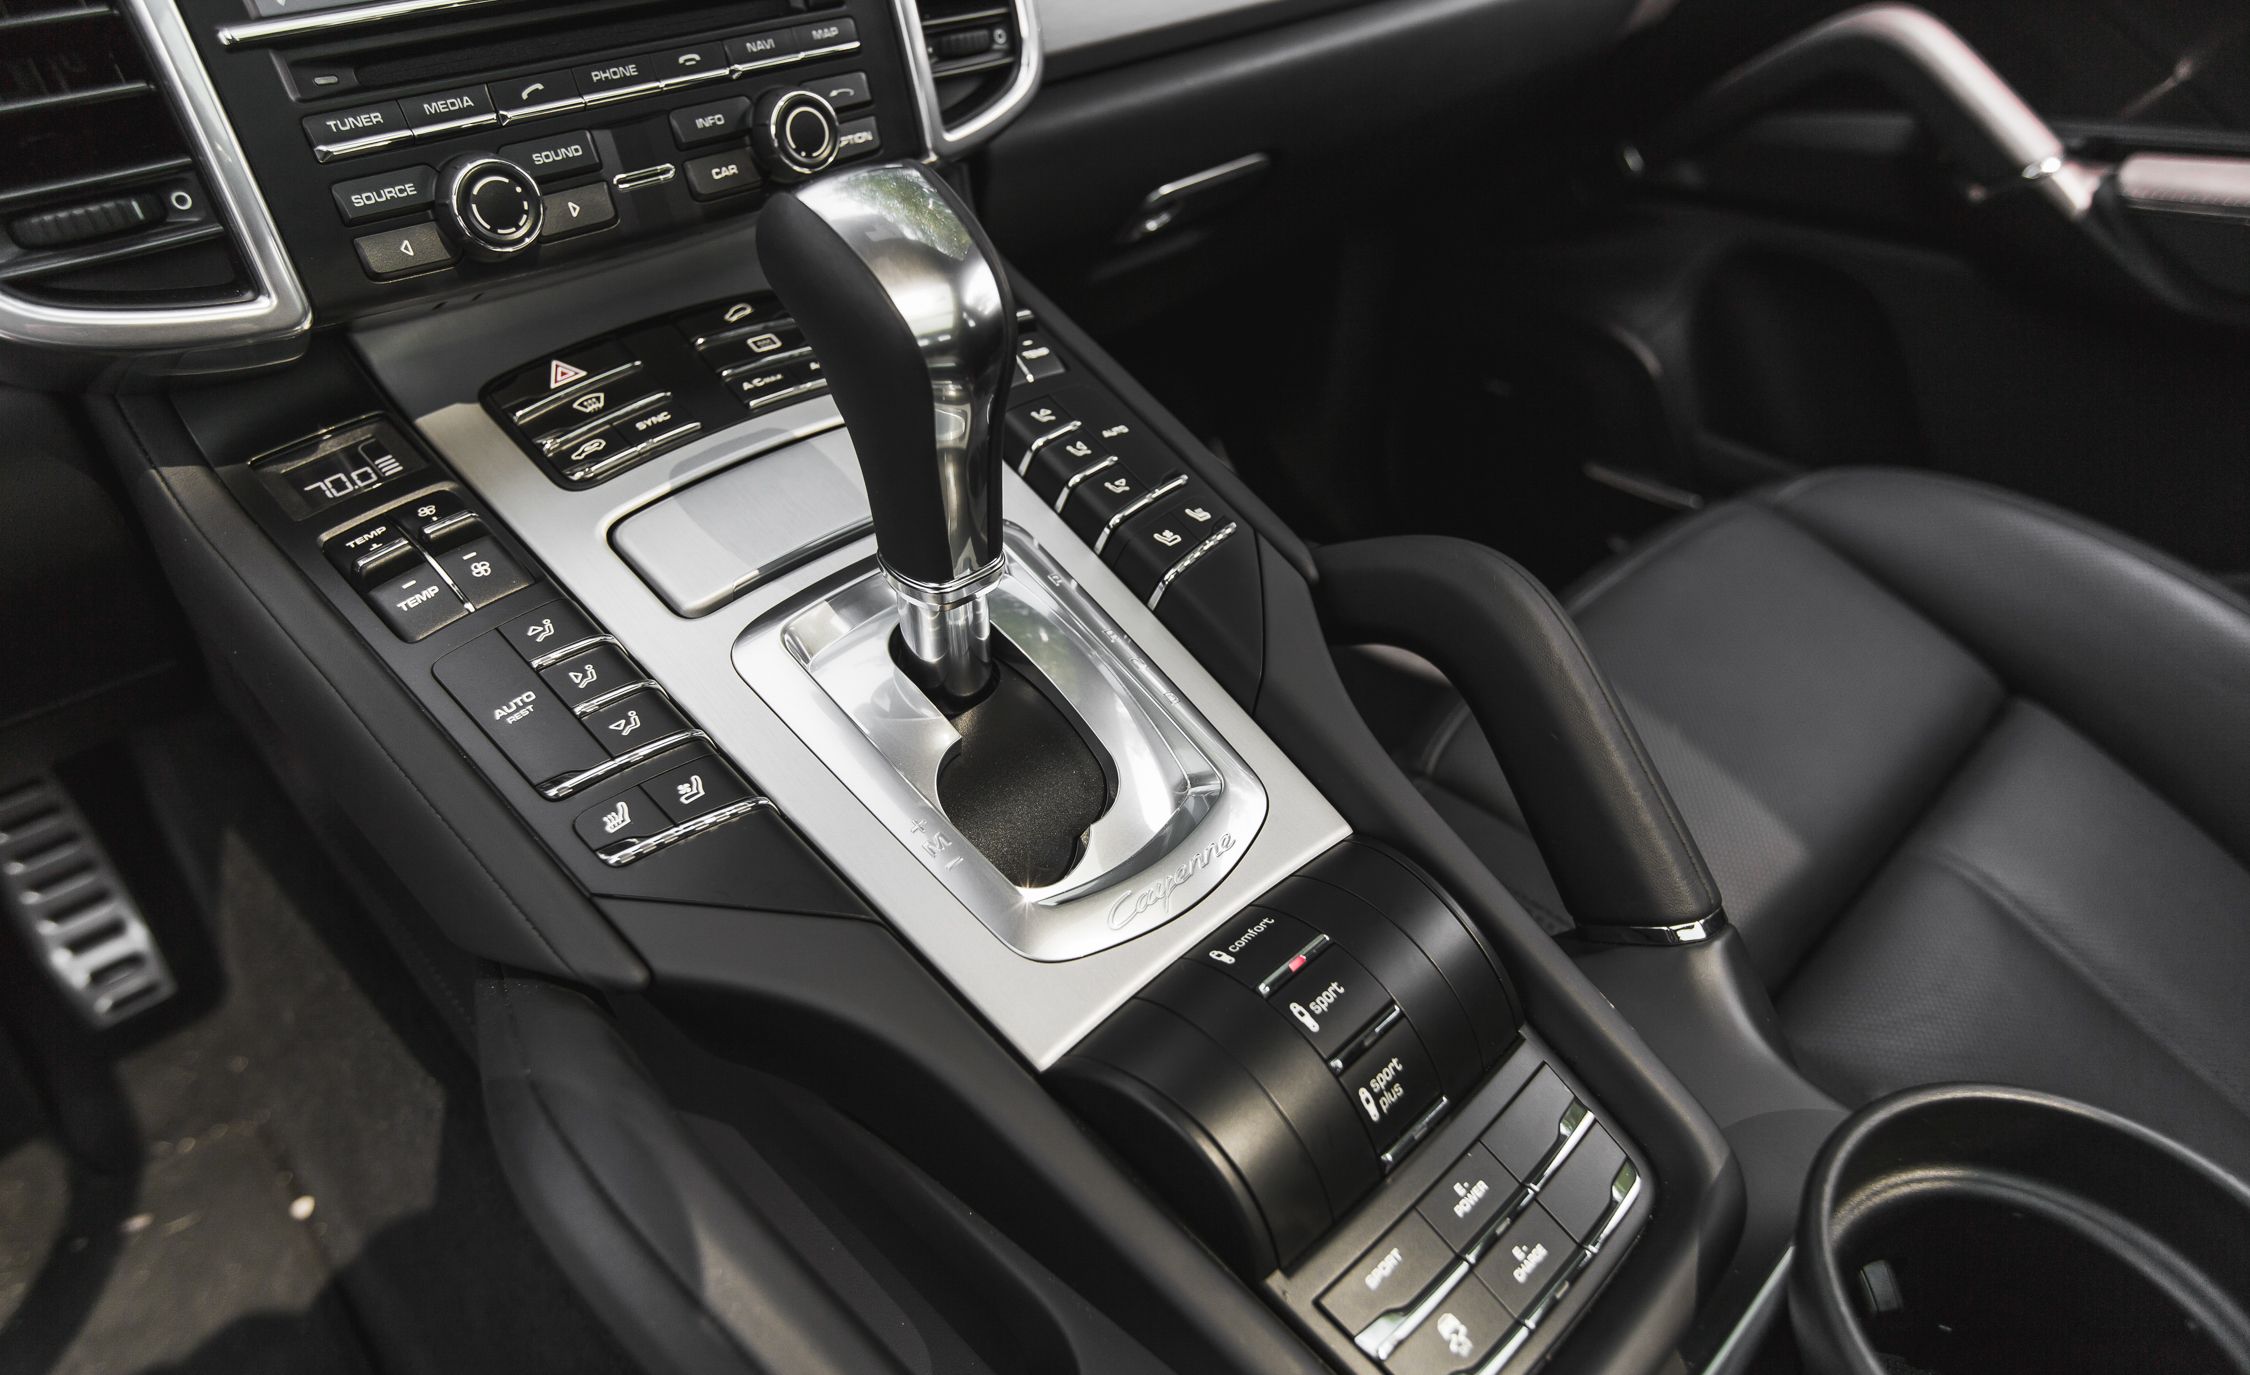 2015 Porsche Cayenne S E Hybrid Interior Transmission 7548 Cars Performance Reviews And